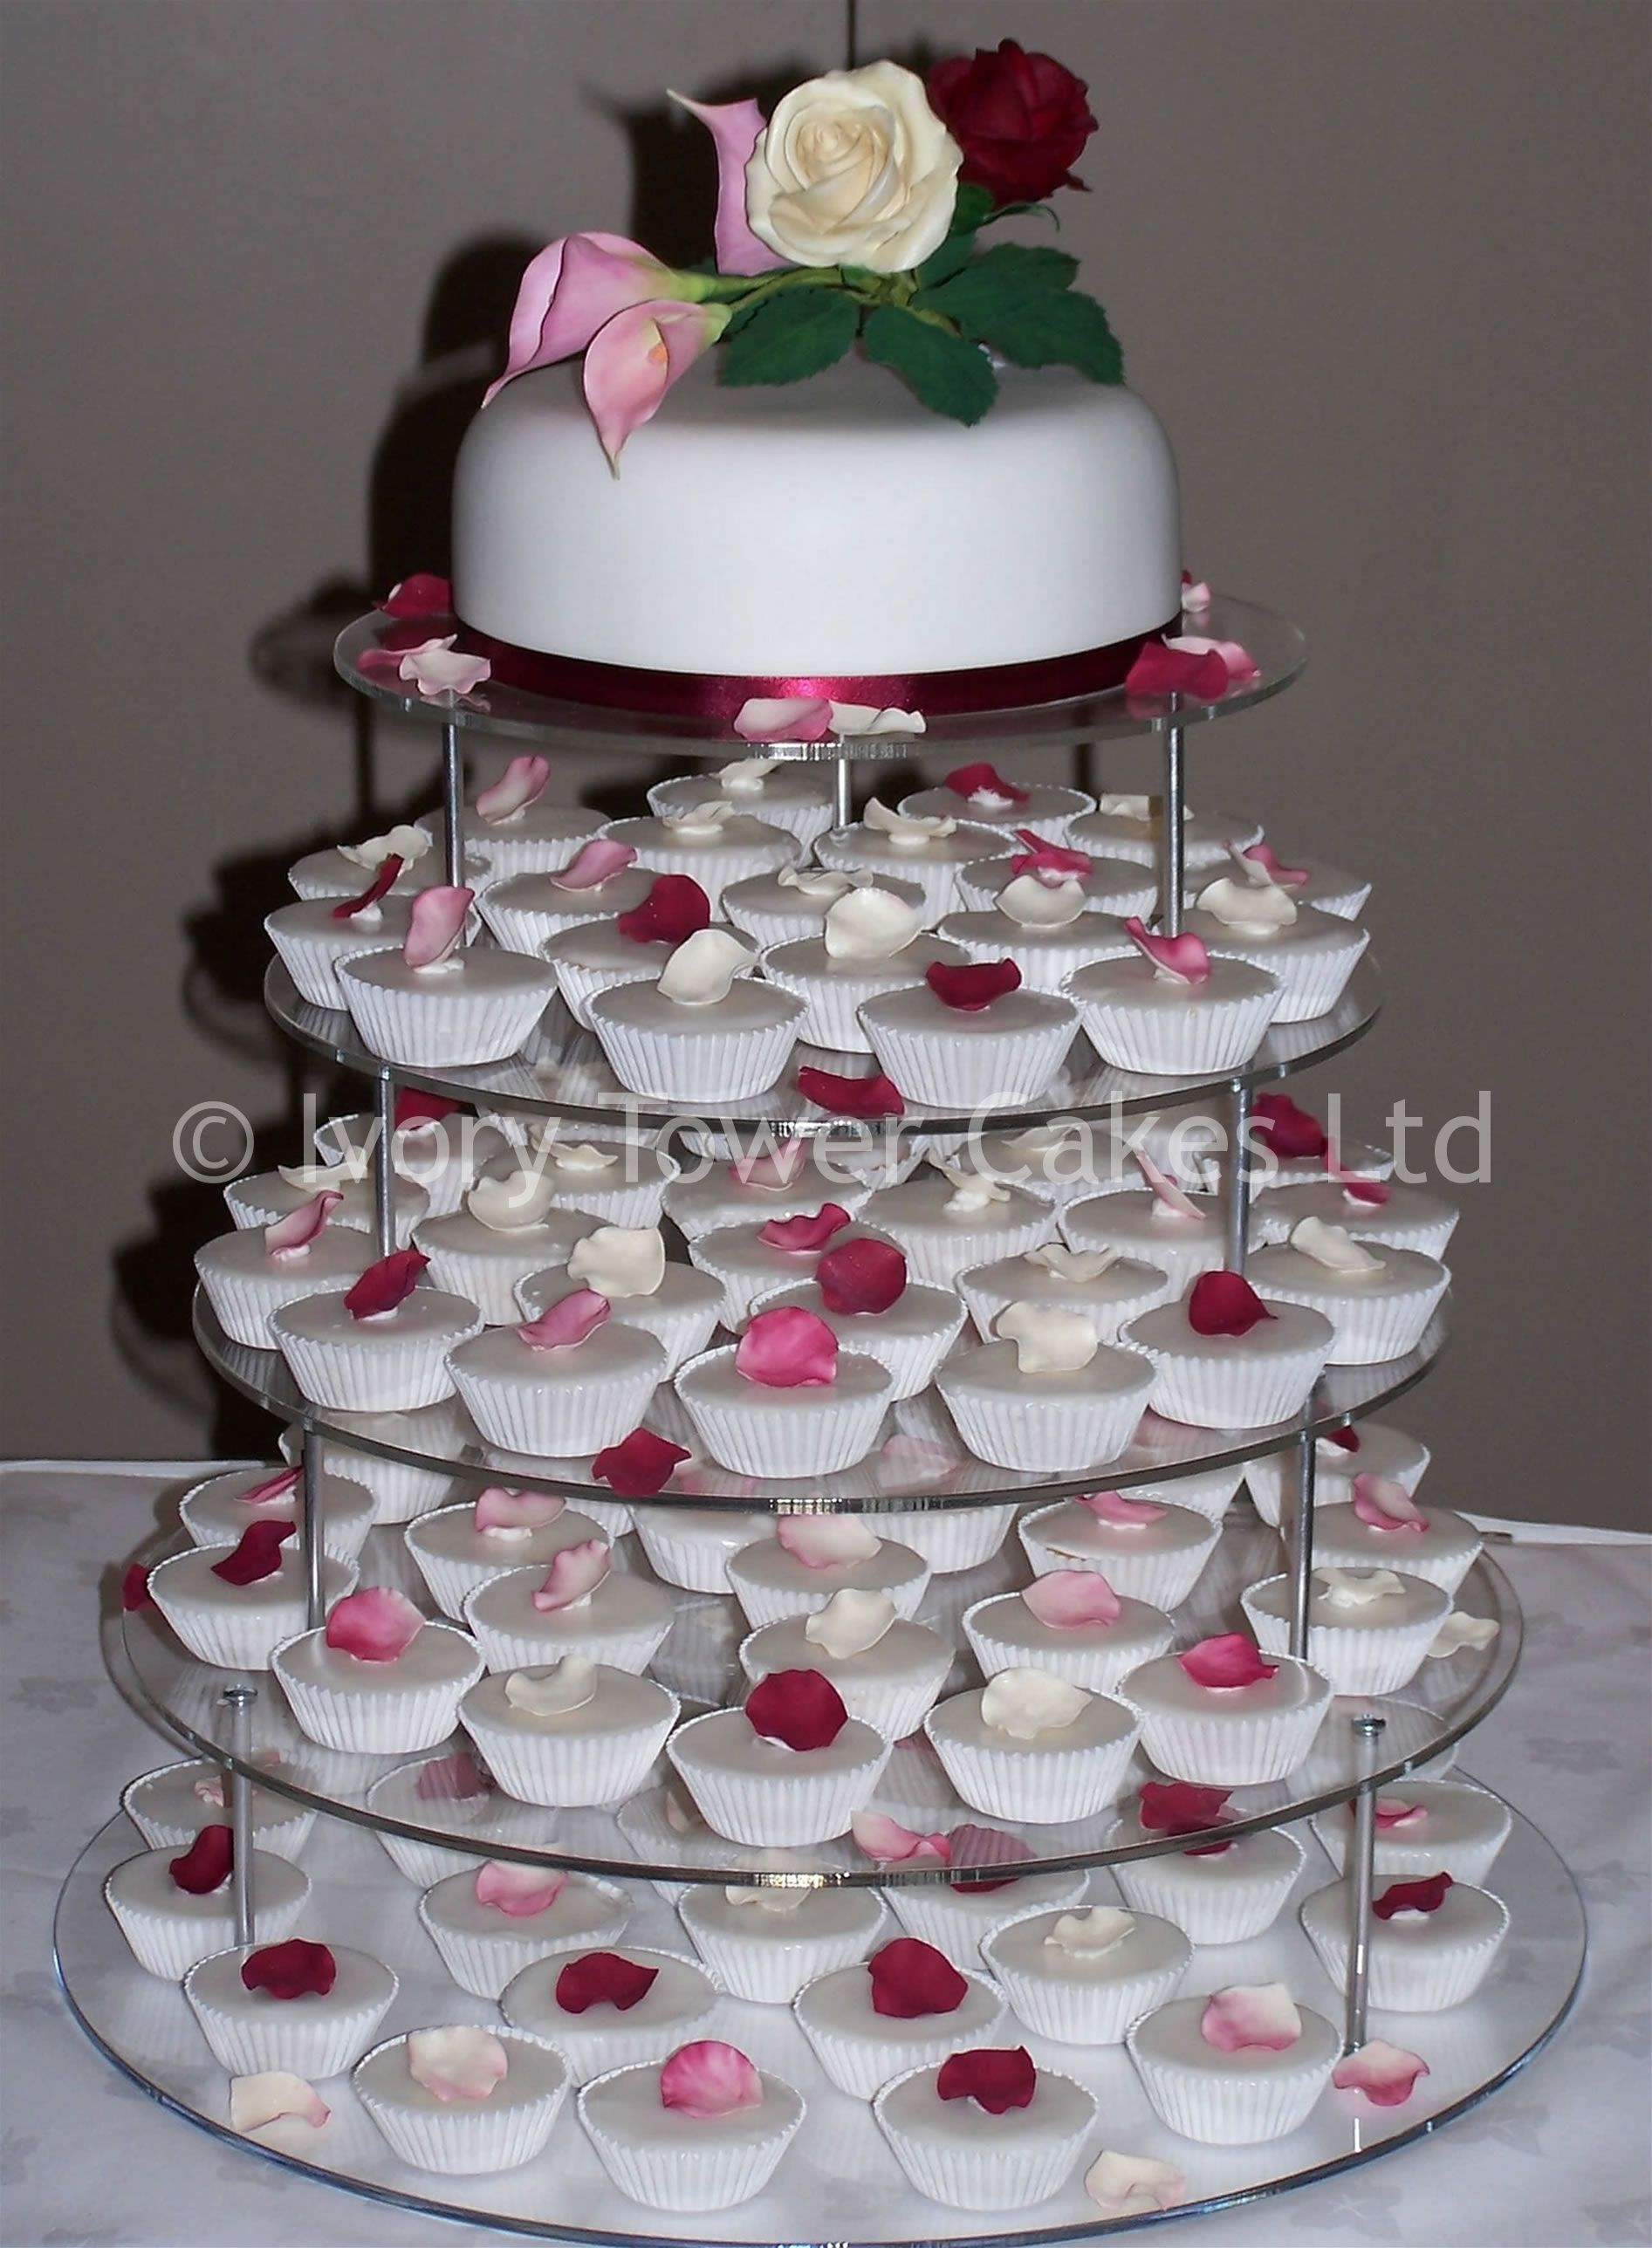 Wedding cupcakes with sugar roses and sugar rose petals by Ivory Tower Cakes